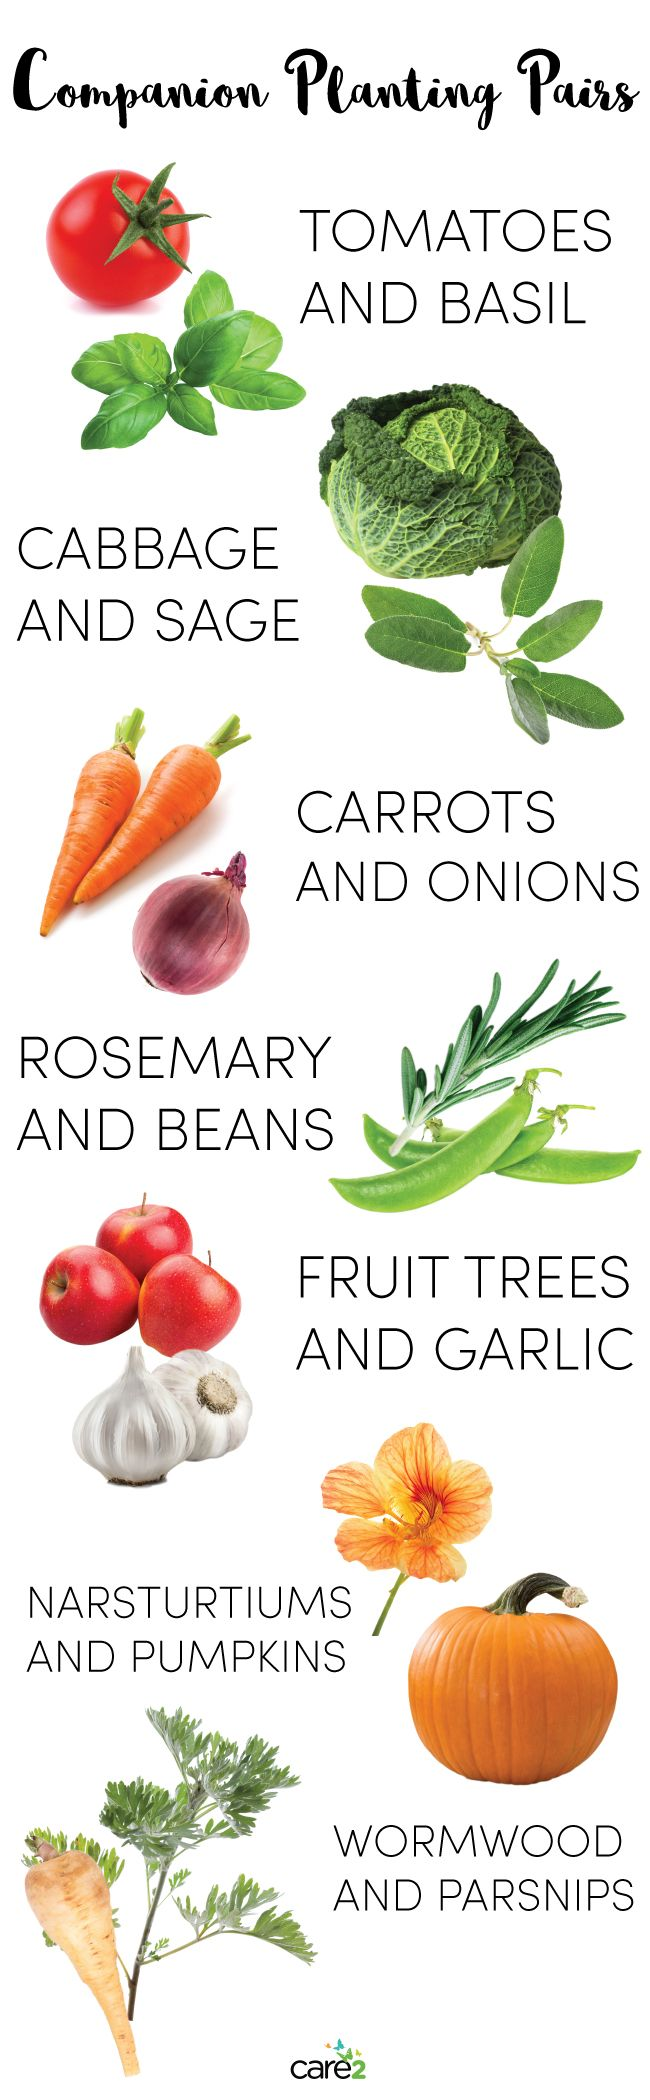 7 Phenomenal Companion Planting Pairs                                                                                                                                                                                 More